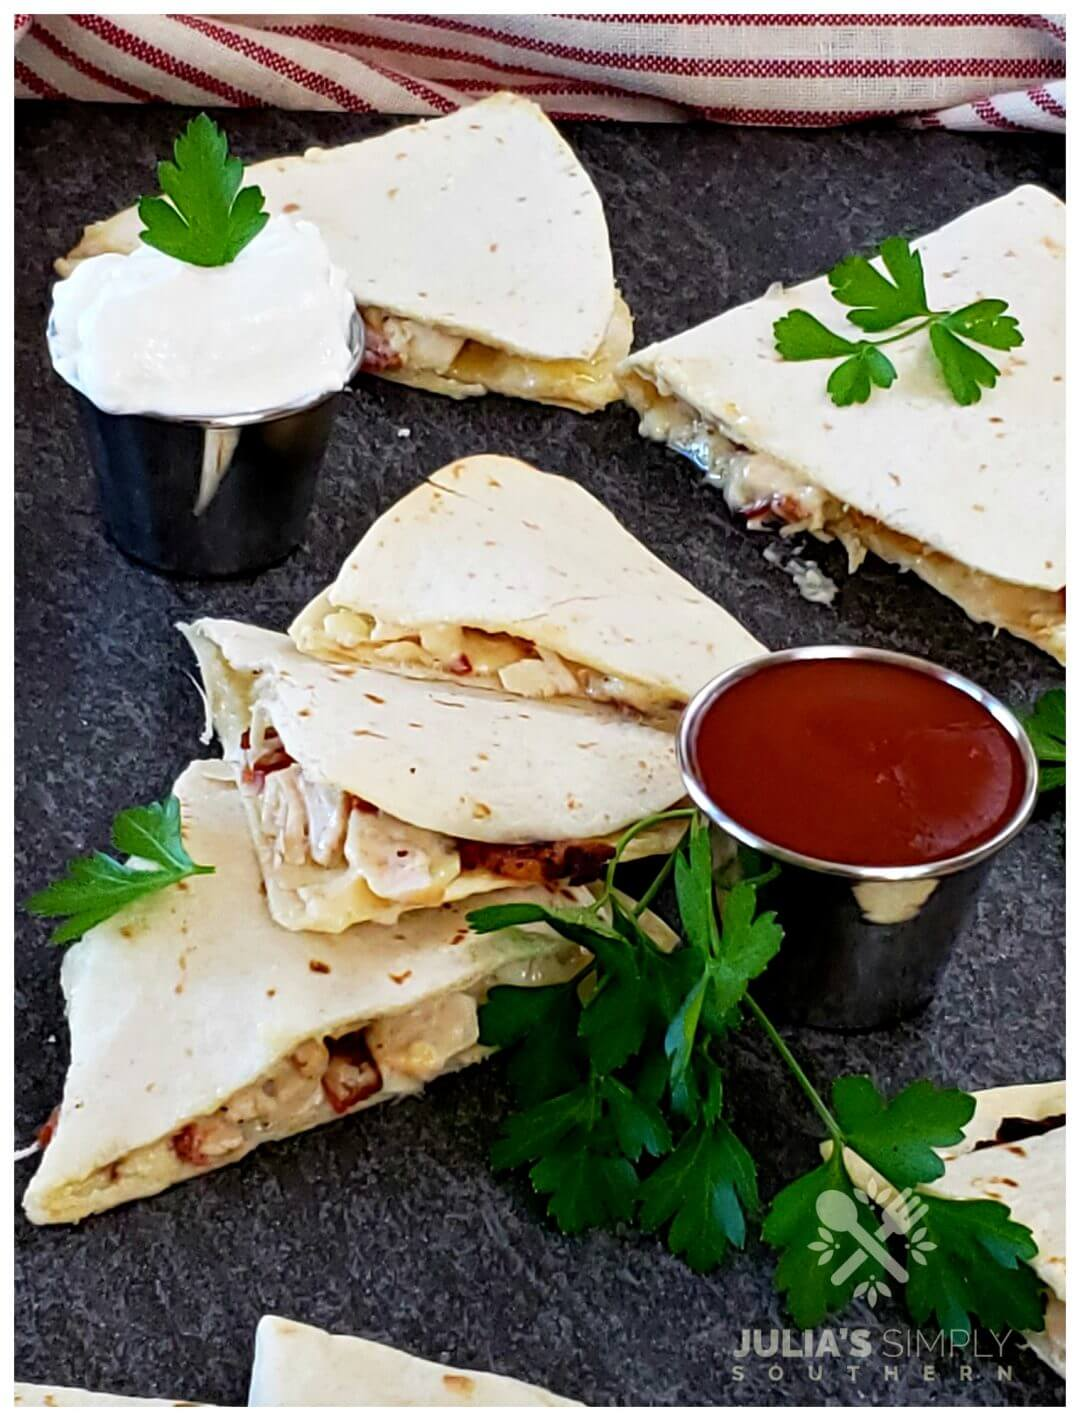 Photo of chicken bacon and ranch quesadillas served with sour cream and hot sauce and garnished with parsley